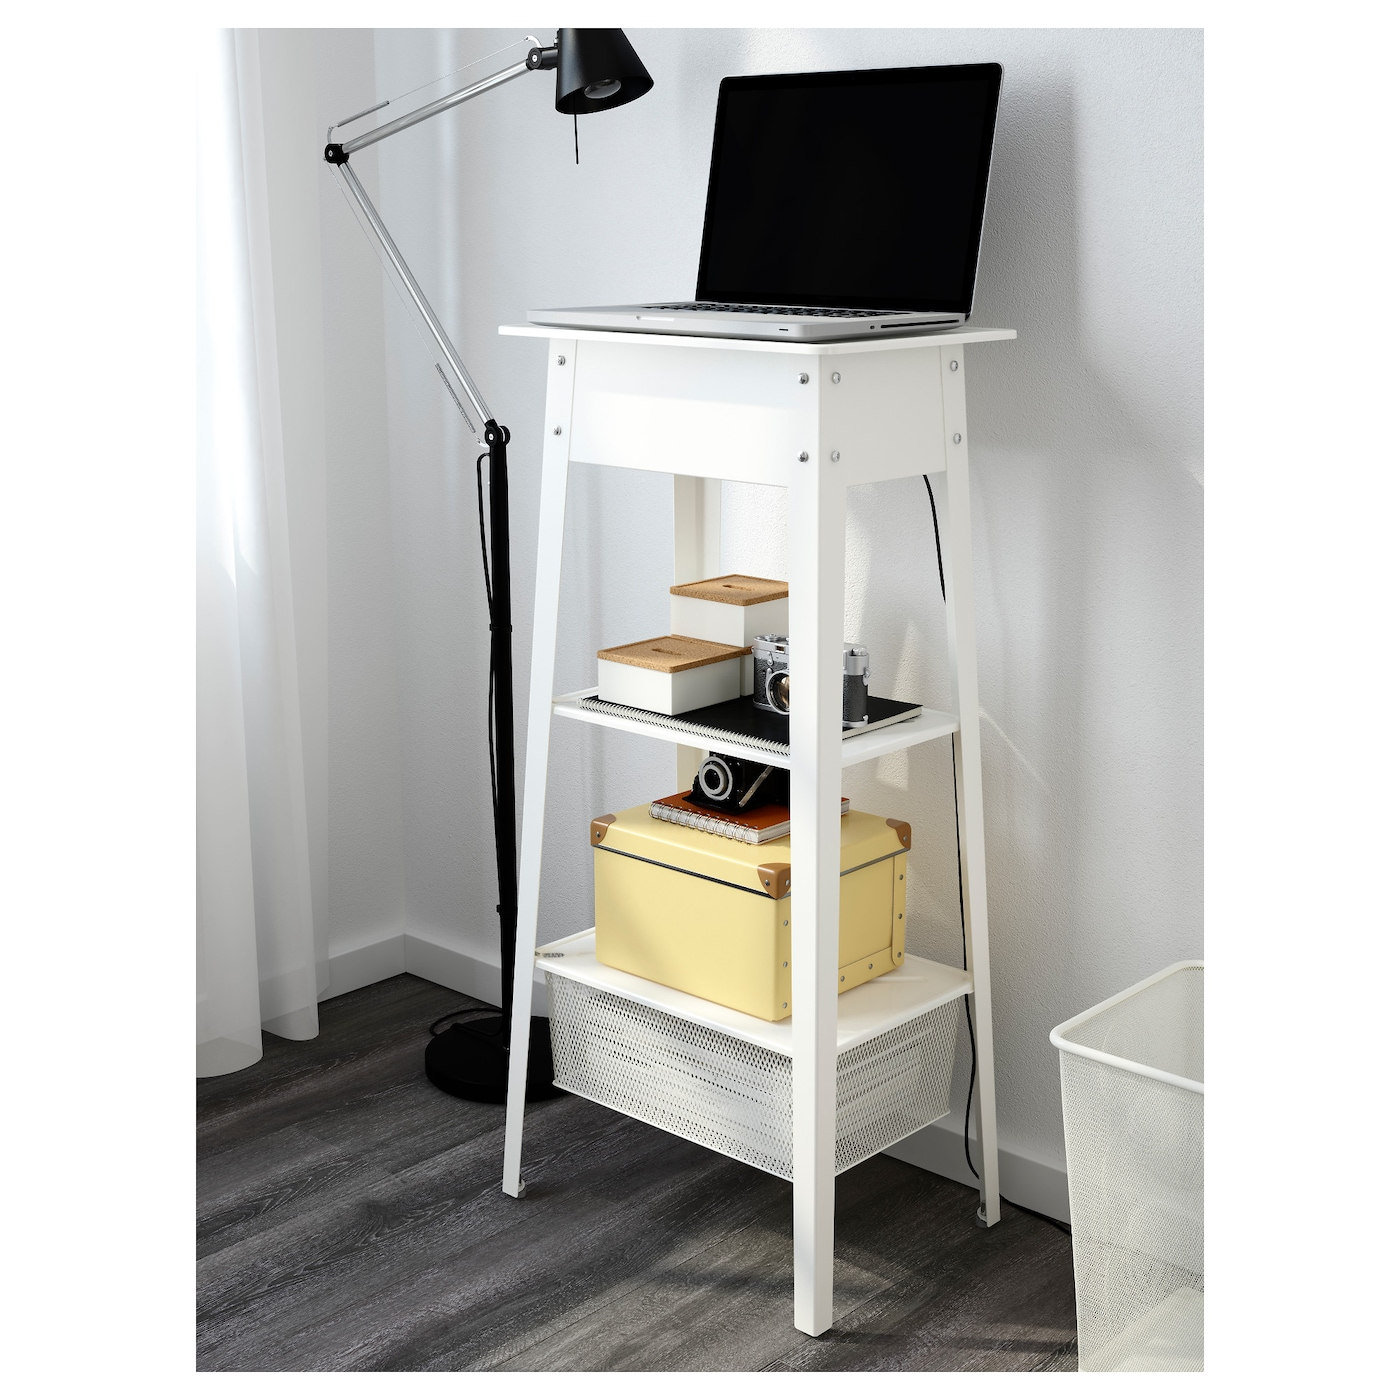 Ikea ps 2014 standing laptop station white ikea for Mobile porta pc ikea